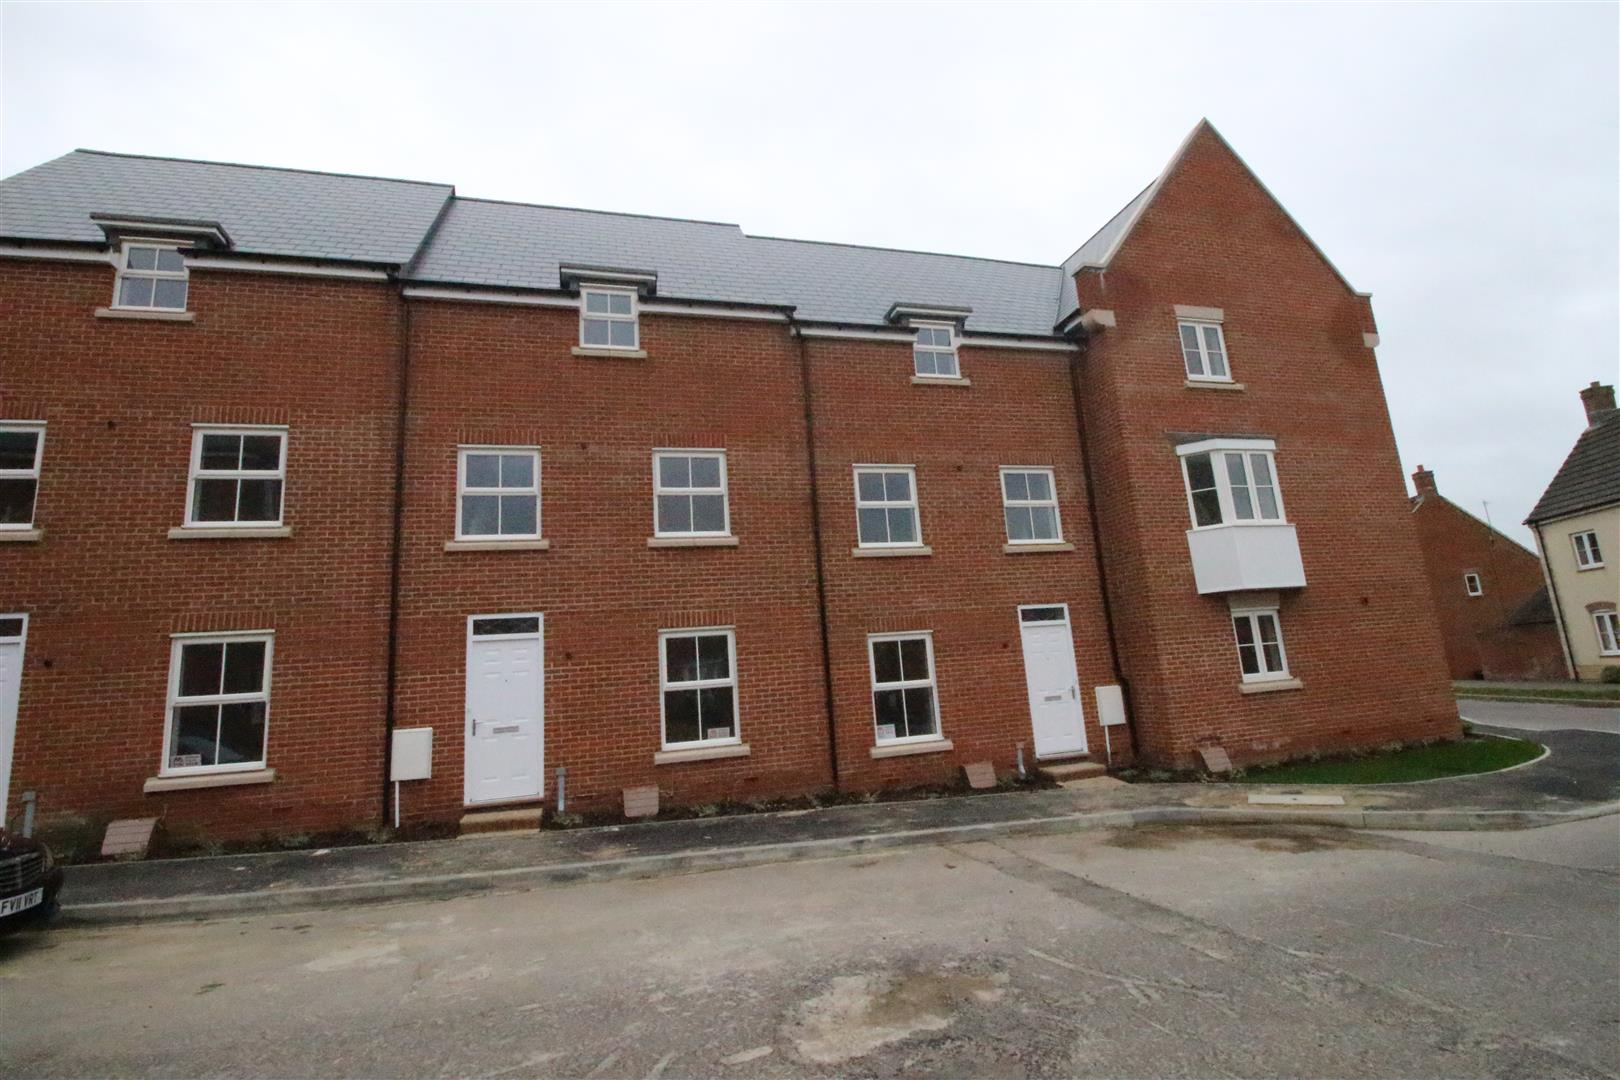 4 Bedrooms Terraced House for sale in Dyson Road, Redhouse, Swindon